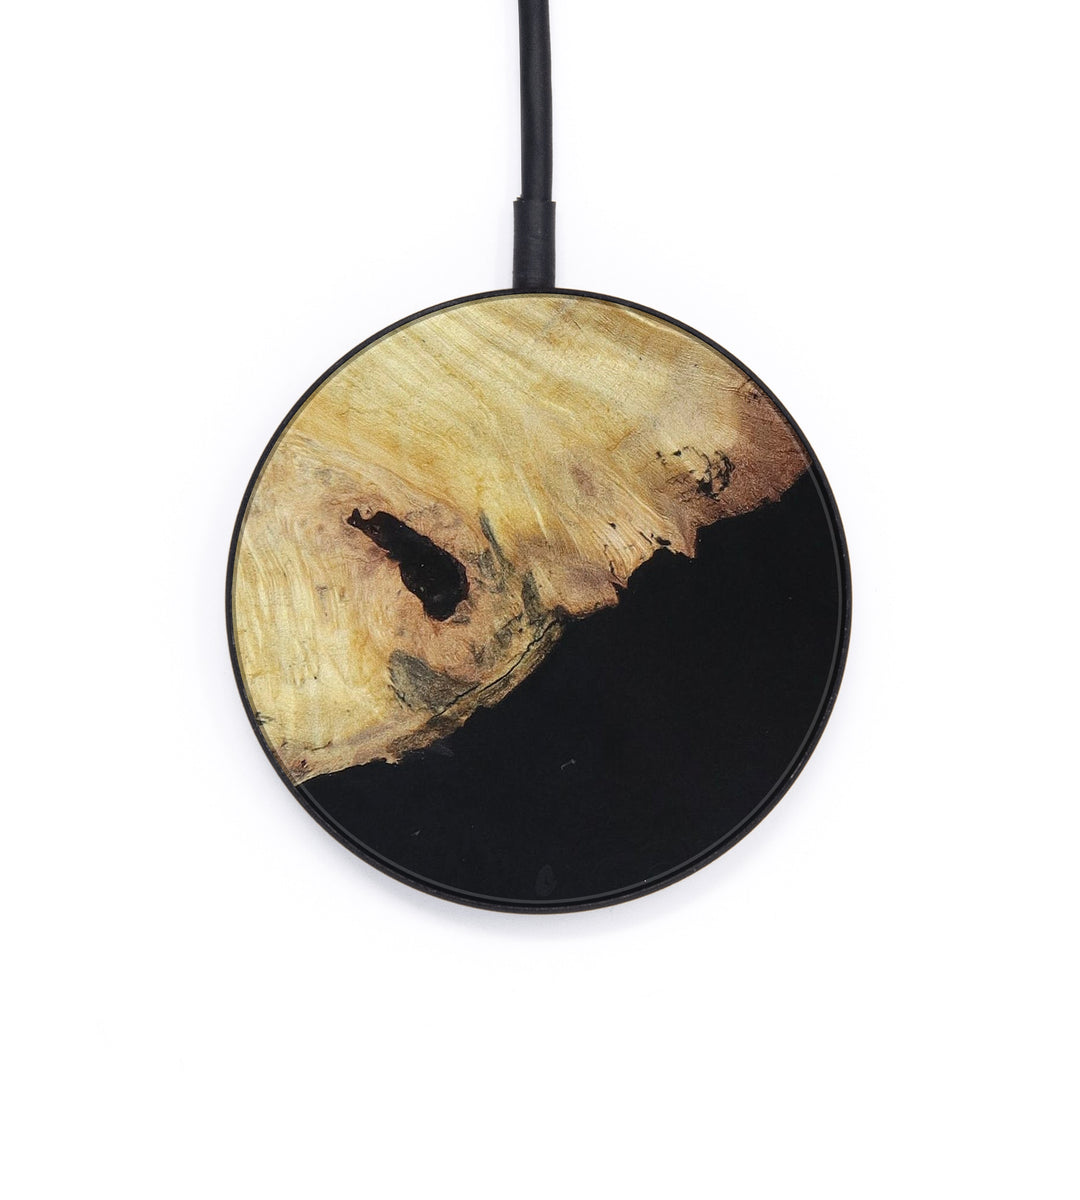 Circle Wood+Resin Wireless Charger - Mallory (Pure Black, 395353)